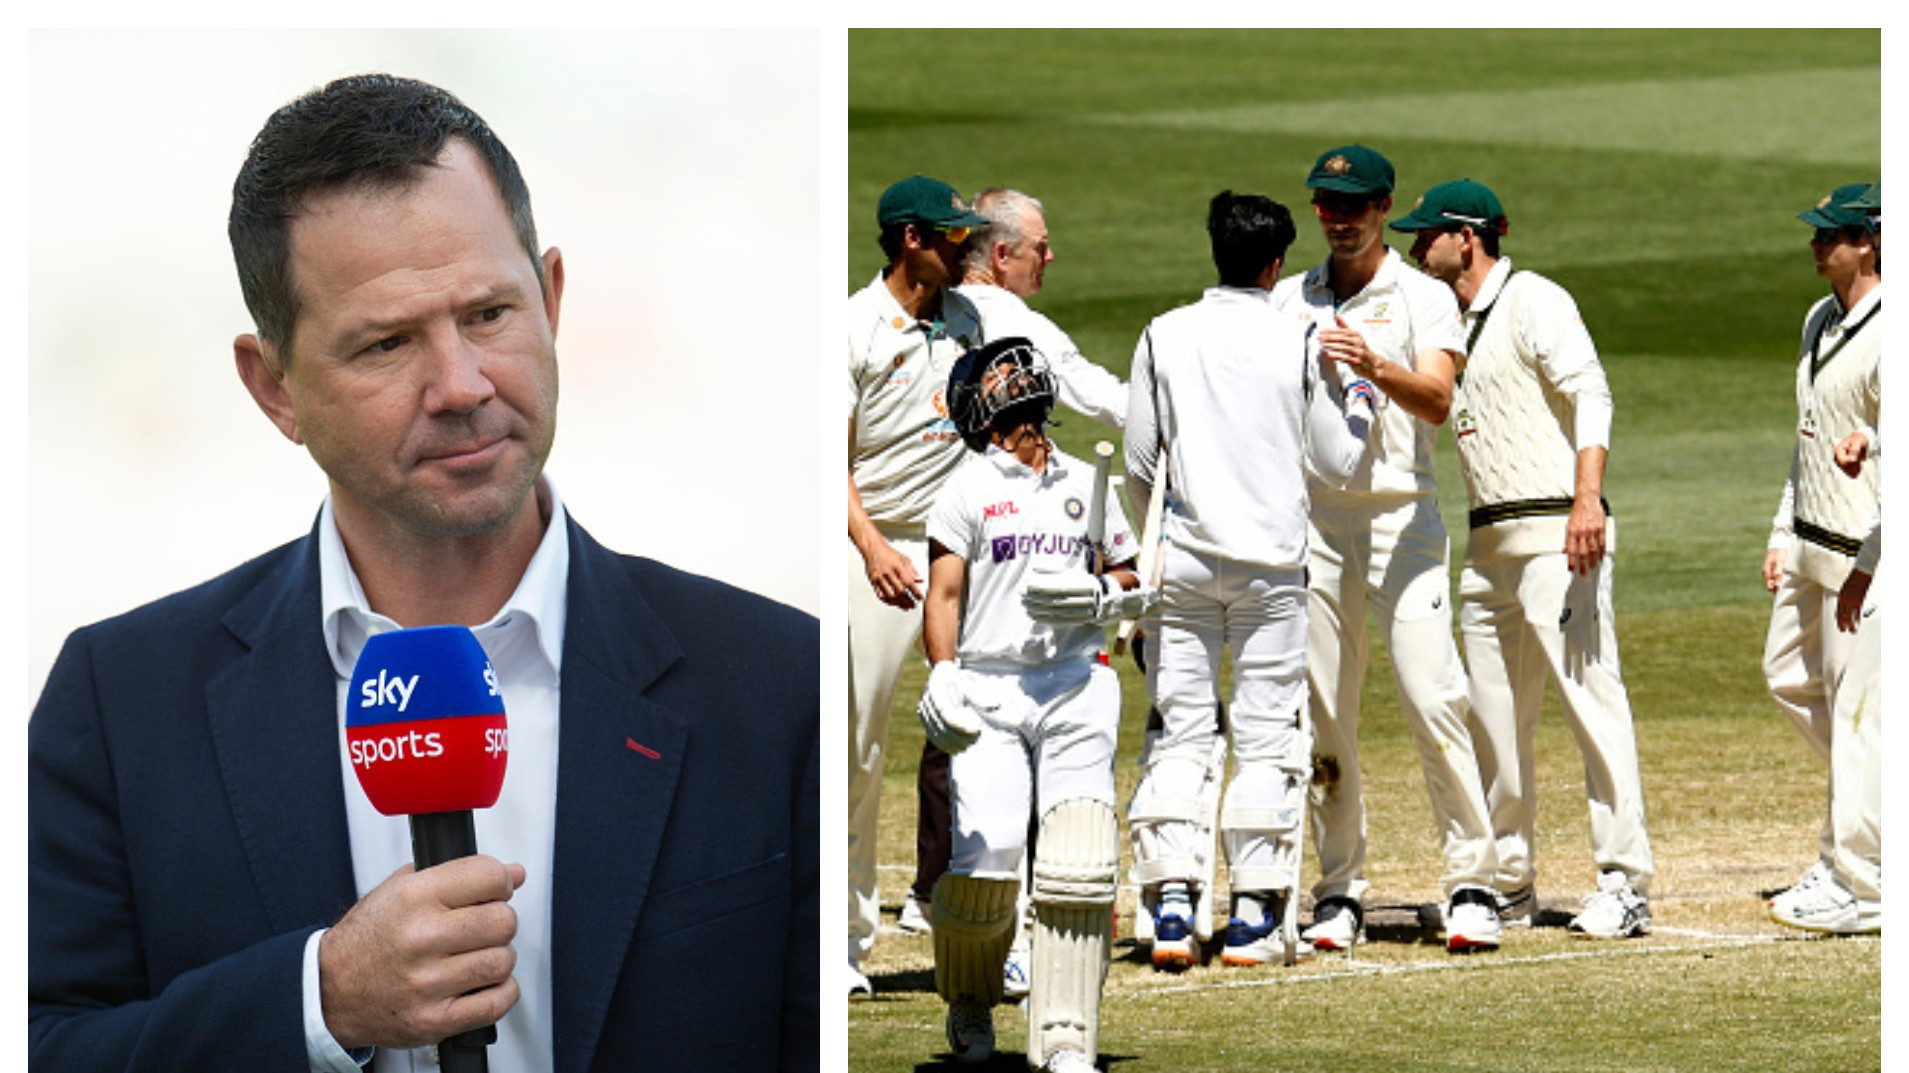 AUS v IND 2020-21: Ricky Ponting worried over Australia's batting issues after loss in Boxing Day Test